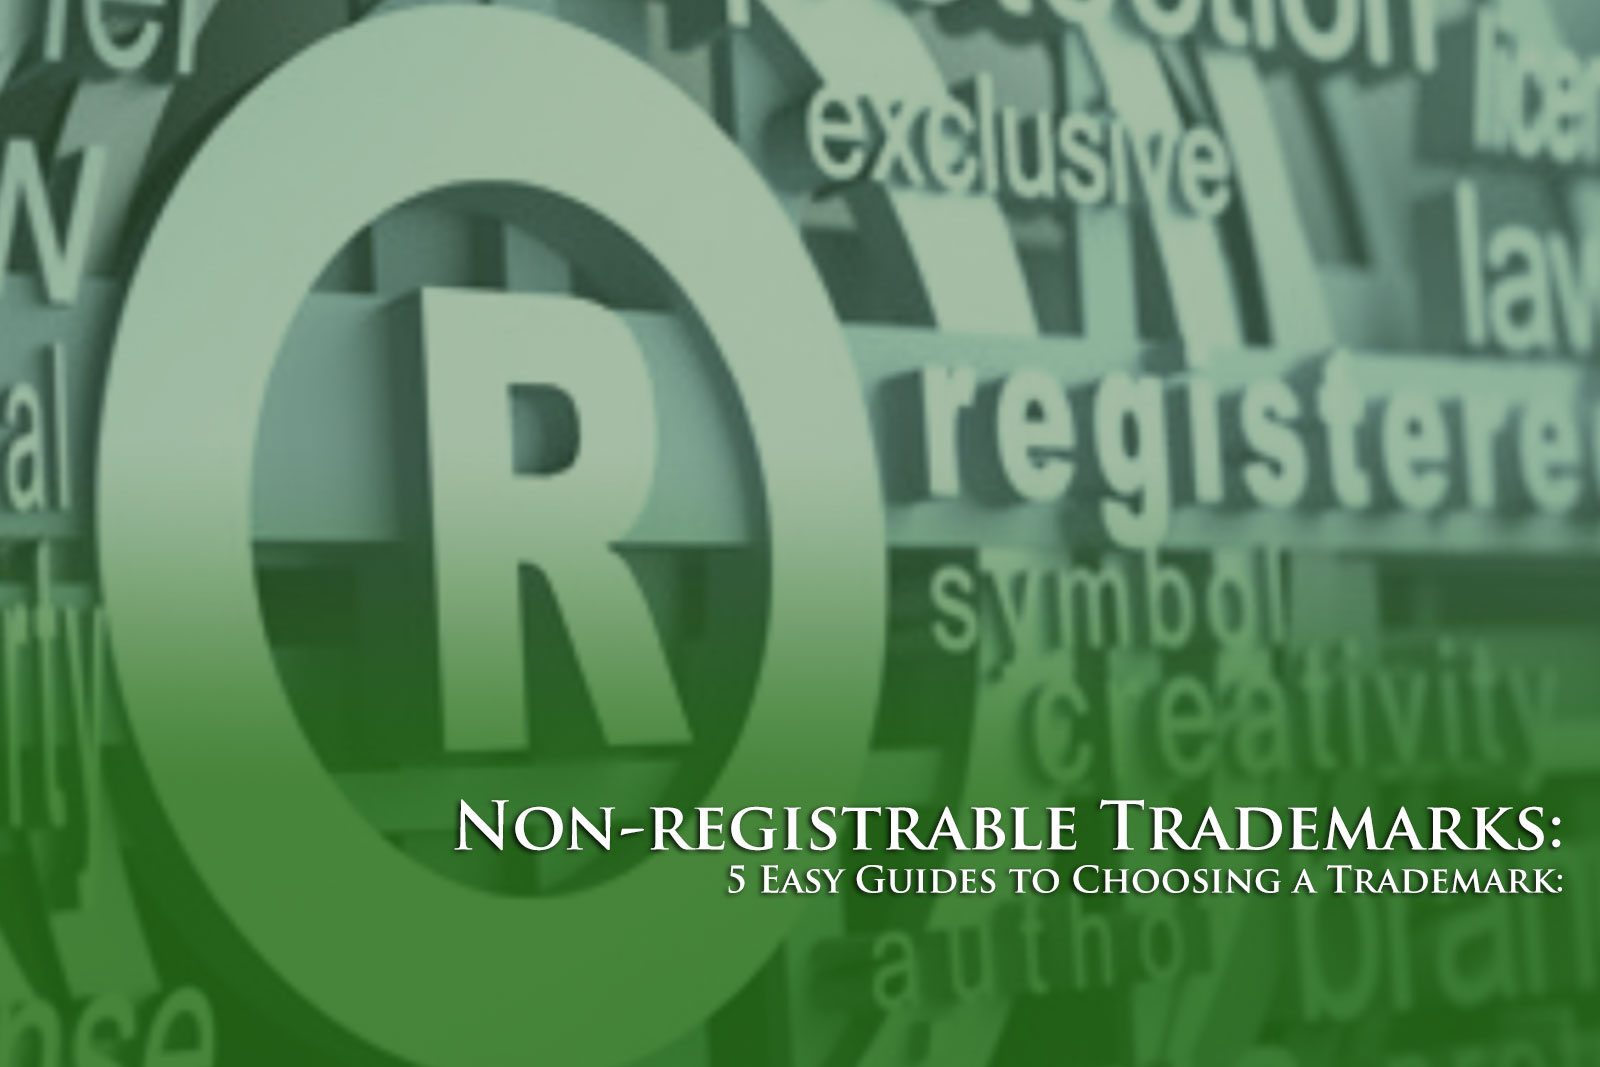 Non-registrable Trademarks: 5 Easy Guides to Choosing a Trademark